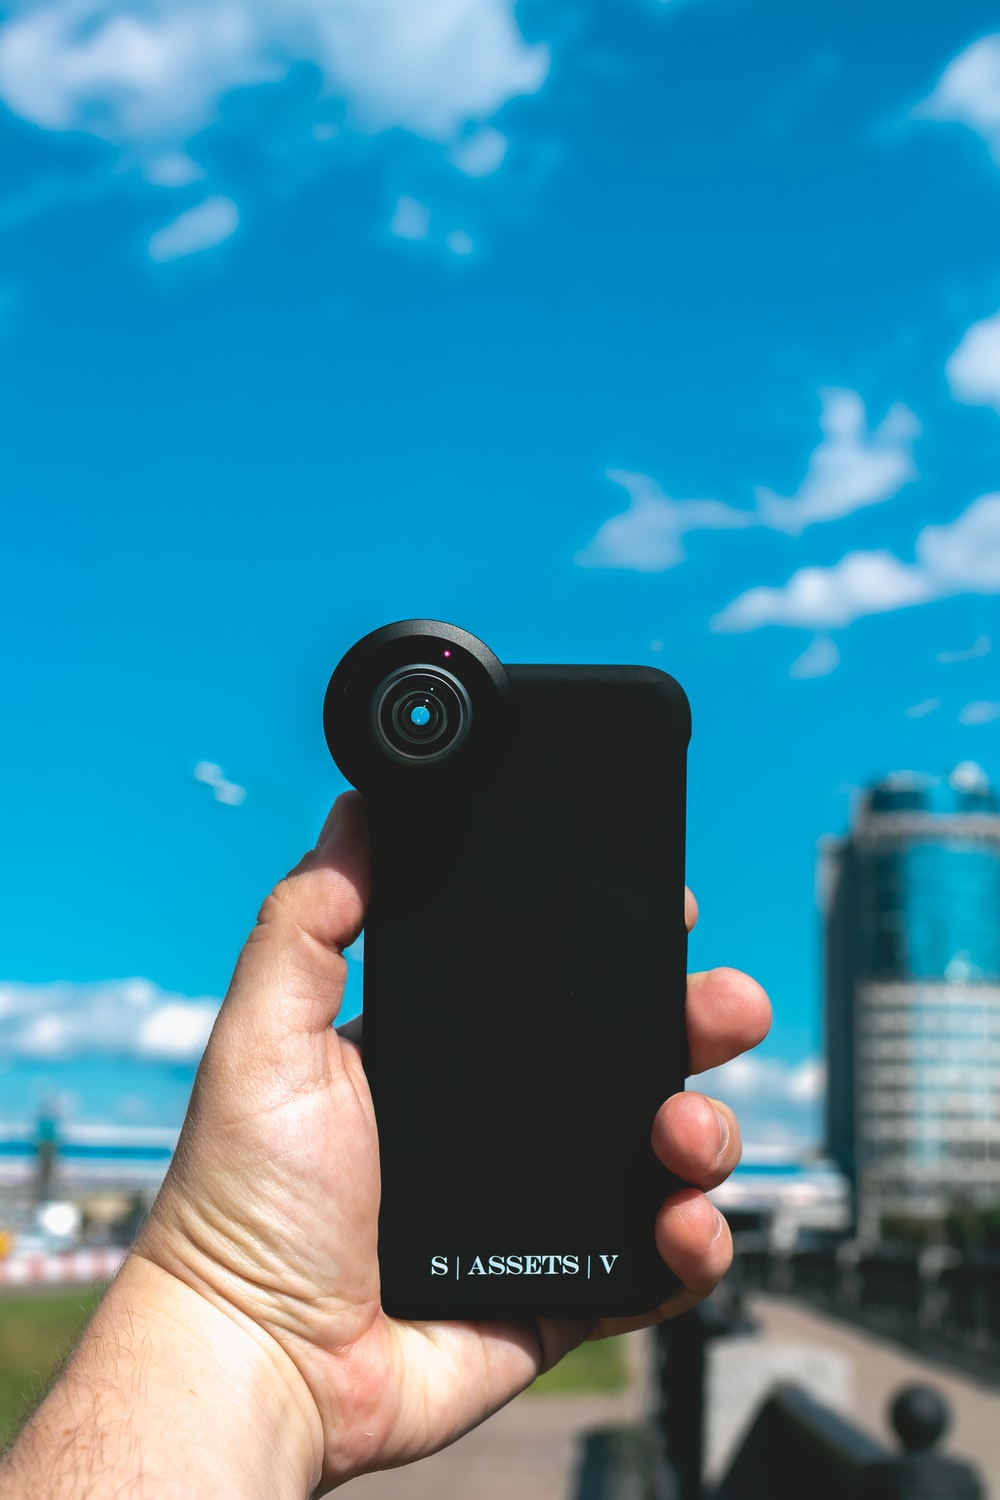 person holding black smartphone taking photo of city buildings during daytime